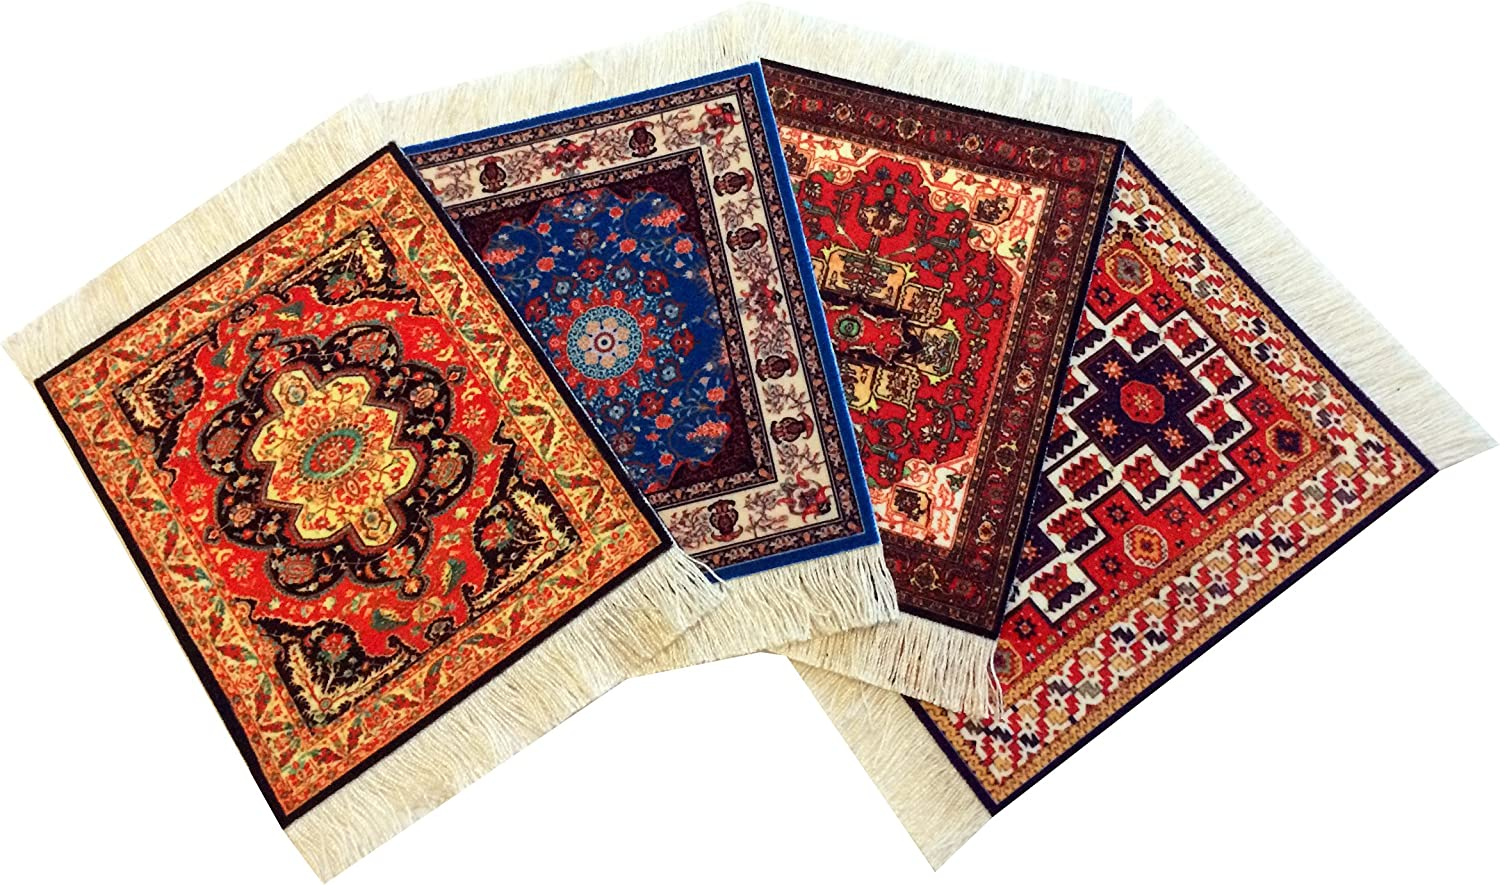 Wovenrugs Set of 4 Rug Table Coasters – Oriental Design Fabric Carpet Drink Mats (Mix-2)